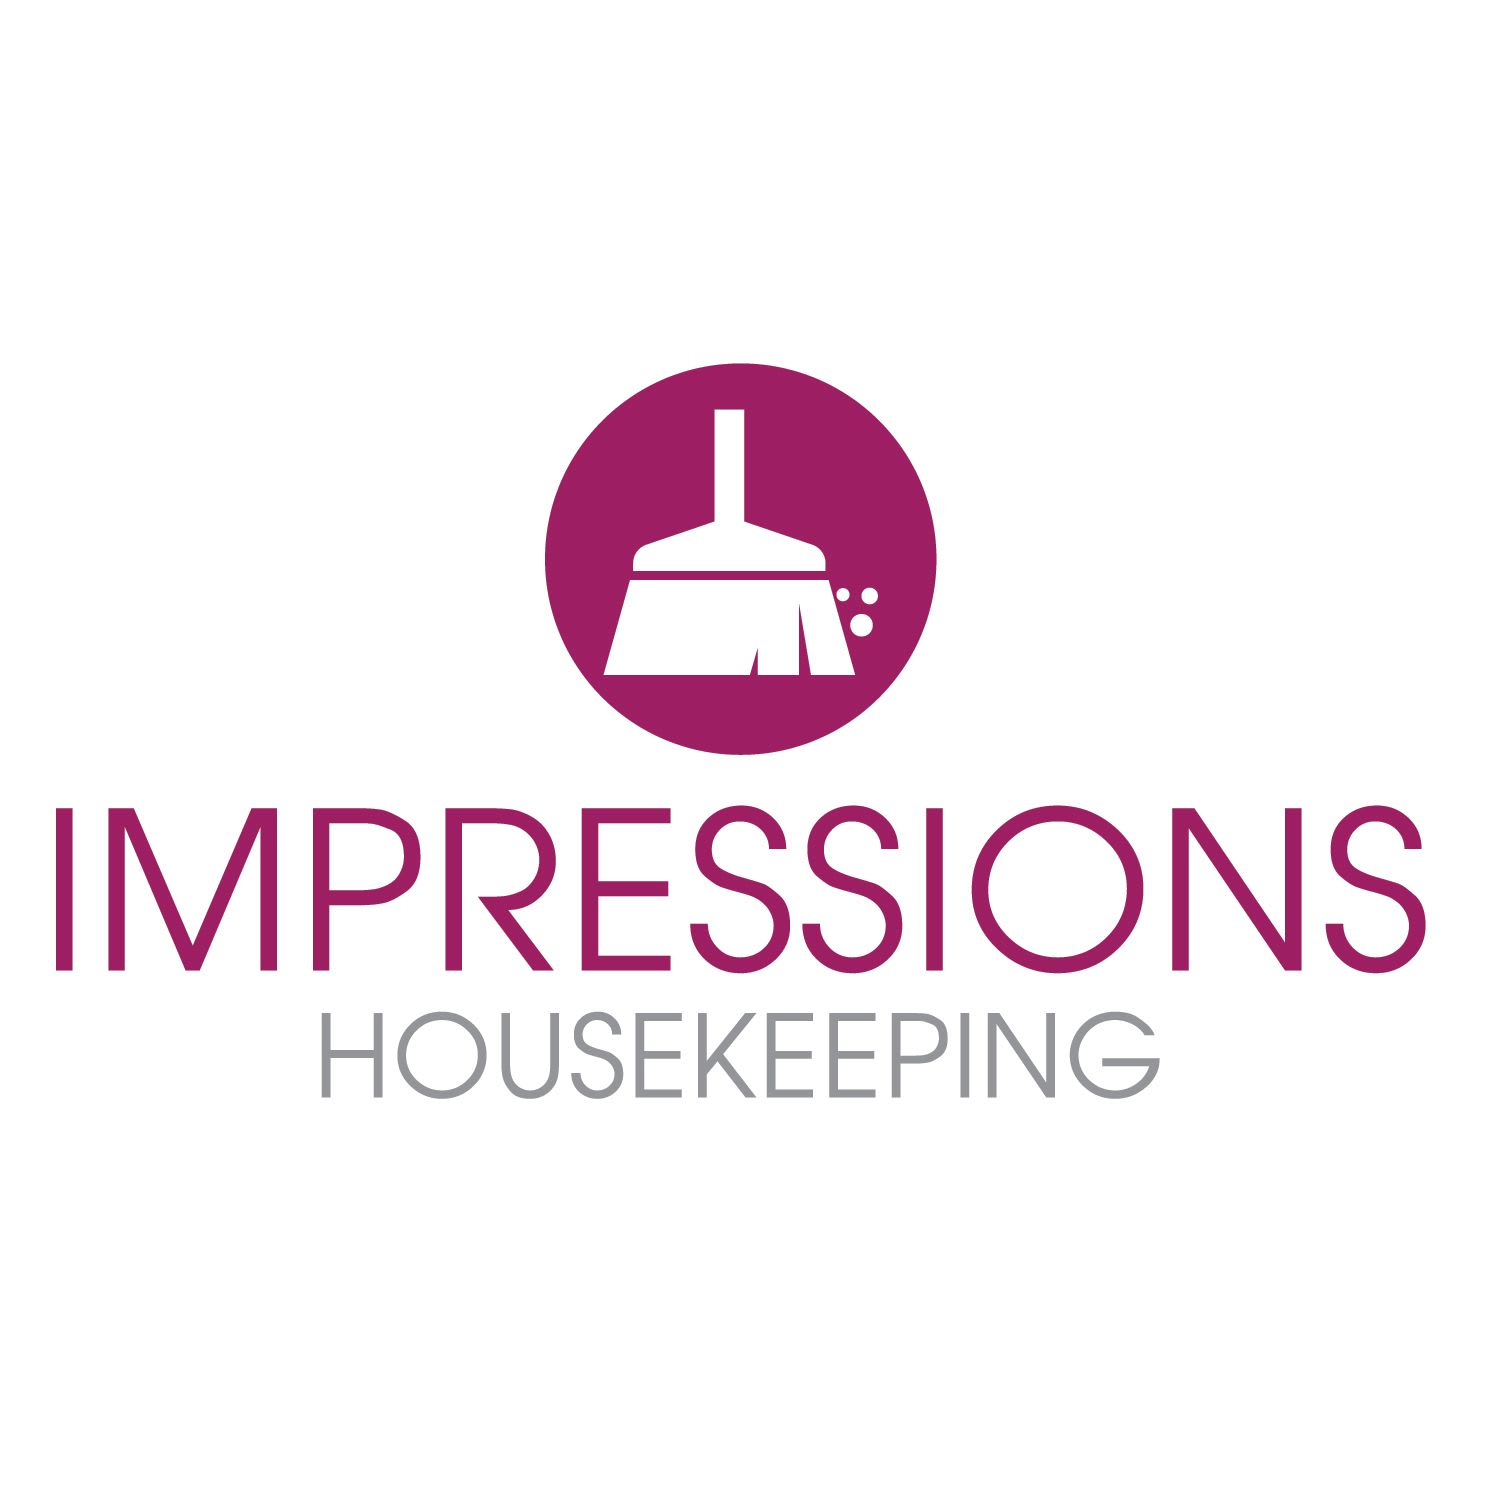 Senior living house keeping impressions in Suwanee.